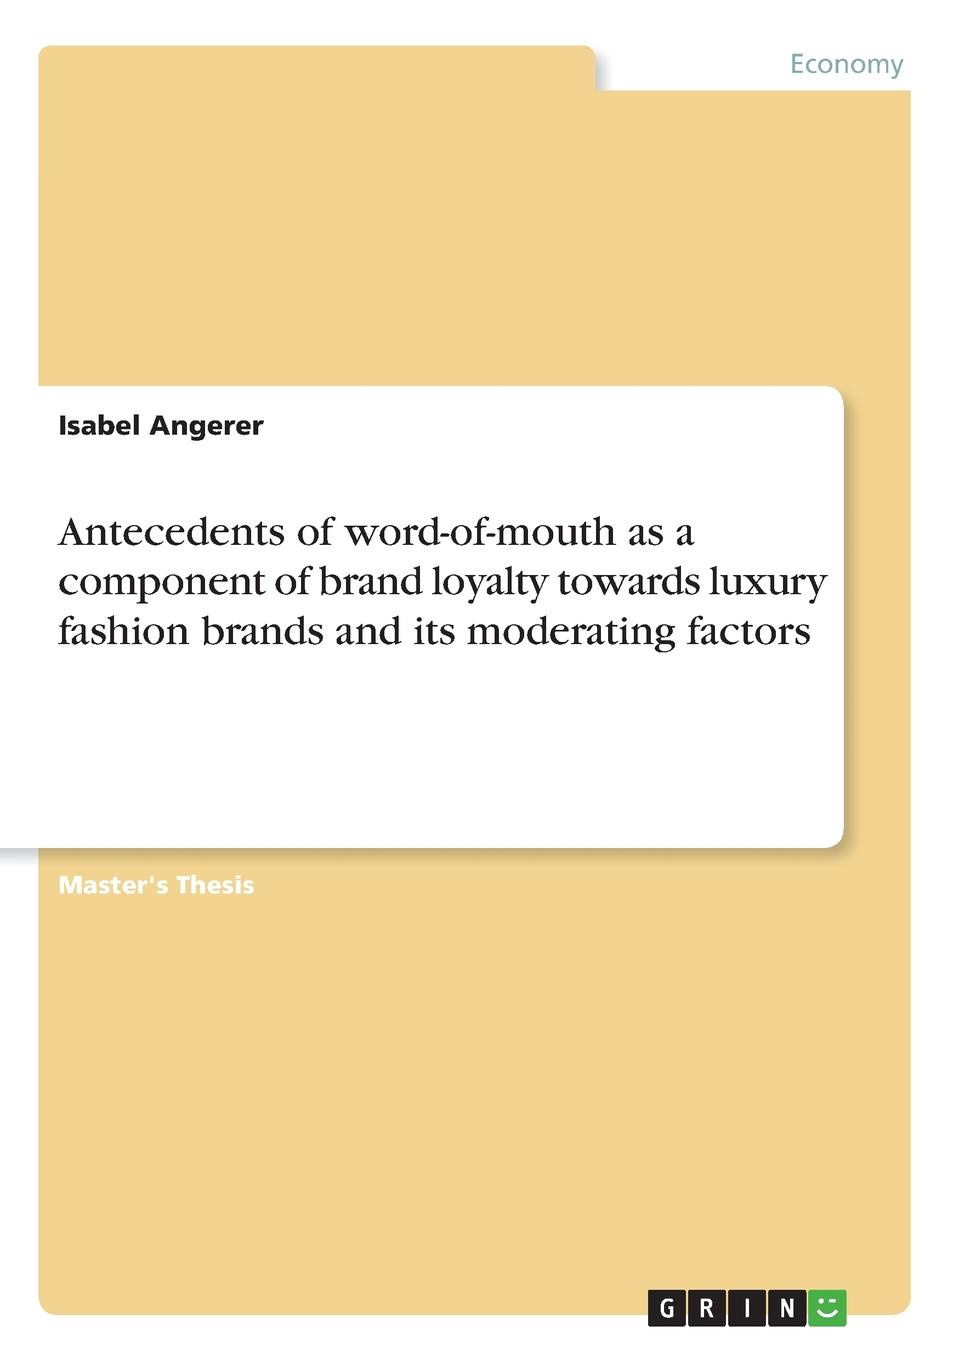 Isabel Angerer Antecedents of word-of-mouth as a component of brand loyalty towards luxury fashion brands and its moderating factors lennon j skywriting by word of mouth